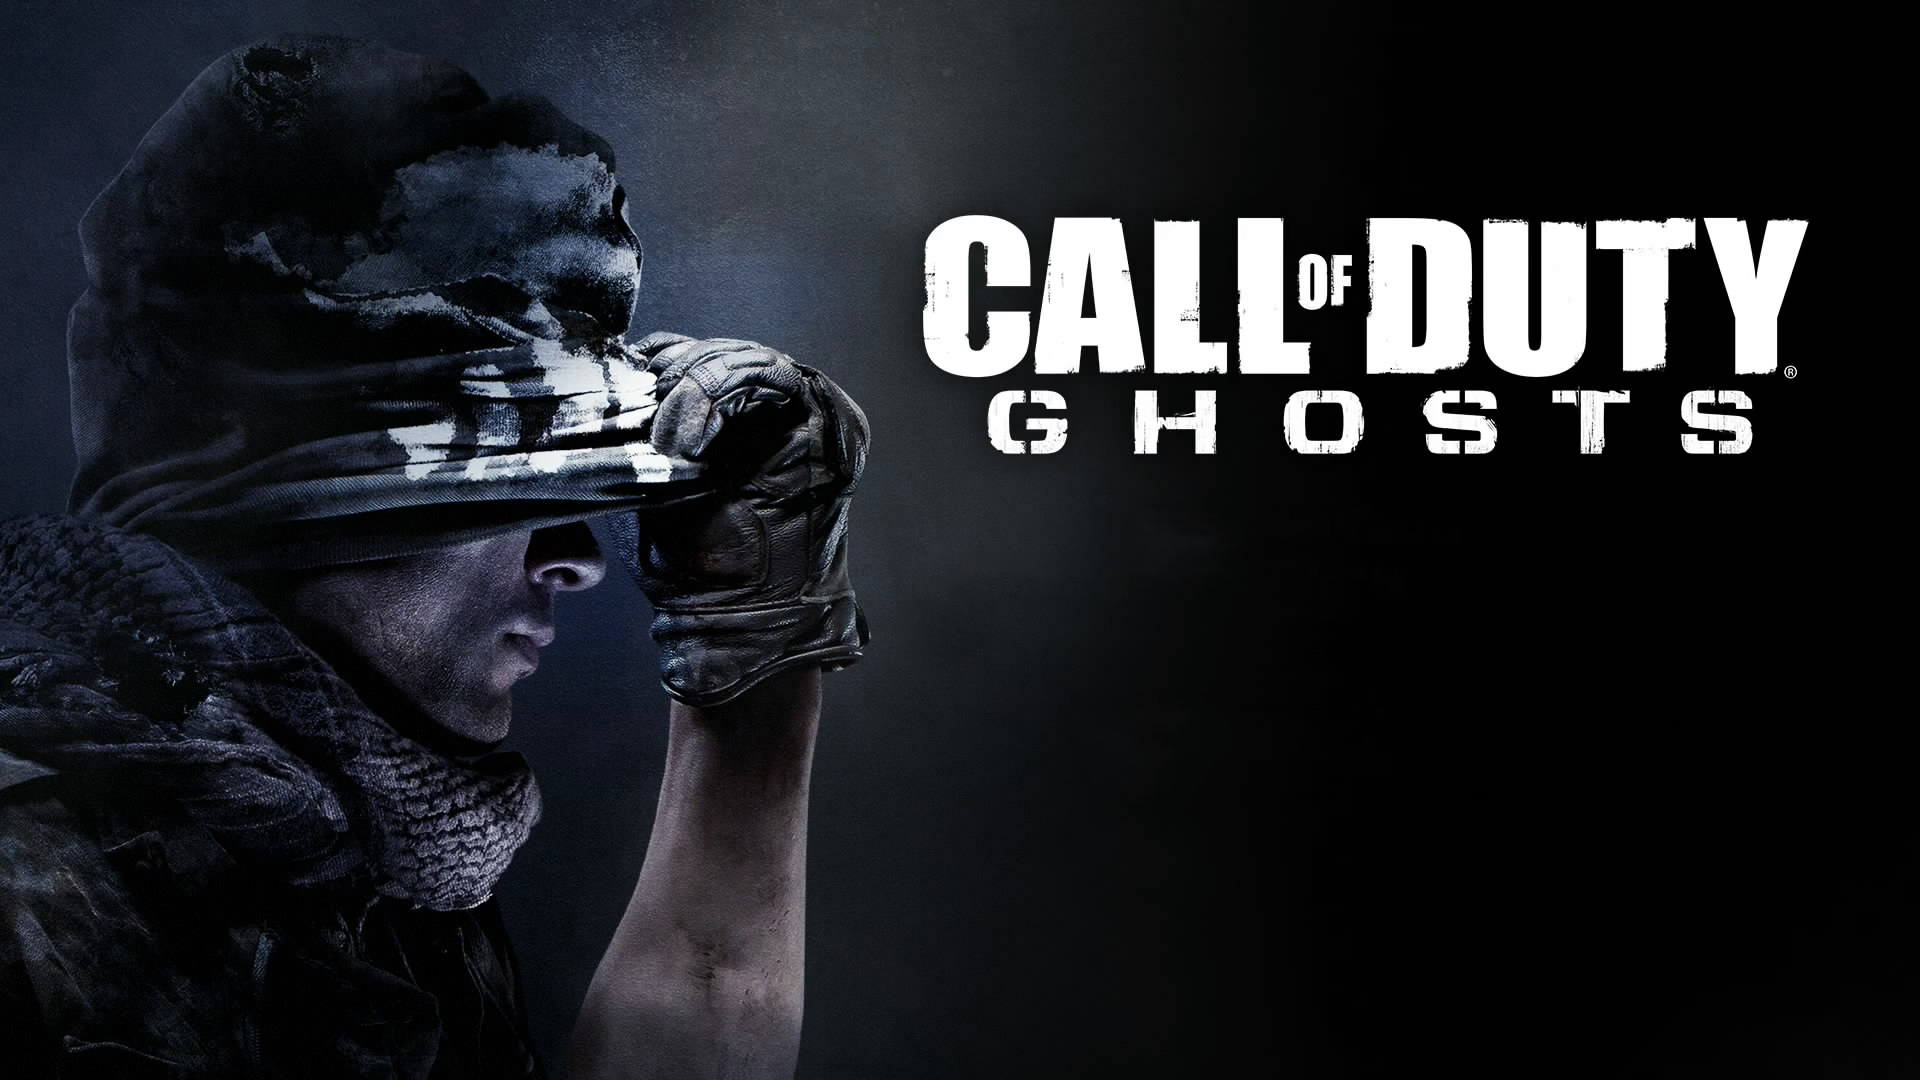 http://fdelj.files.wordpress.com/2013/09/call_of_duty_ghosts-hd.jpg